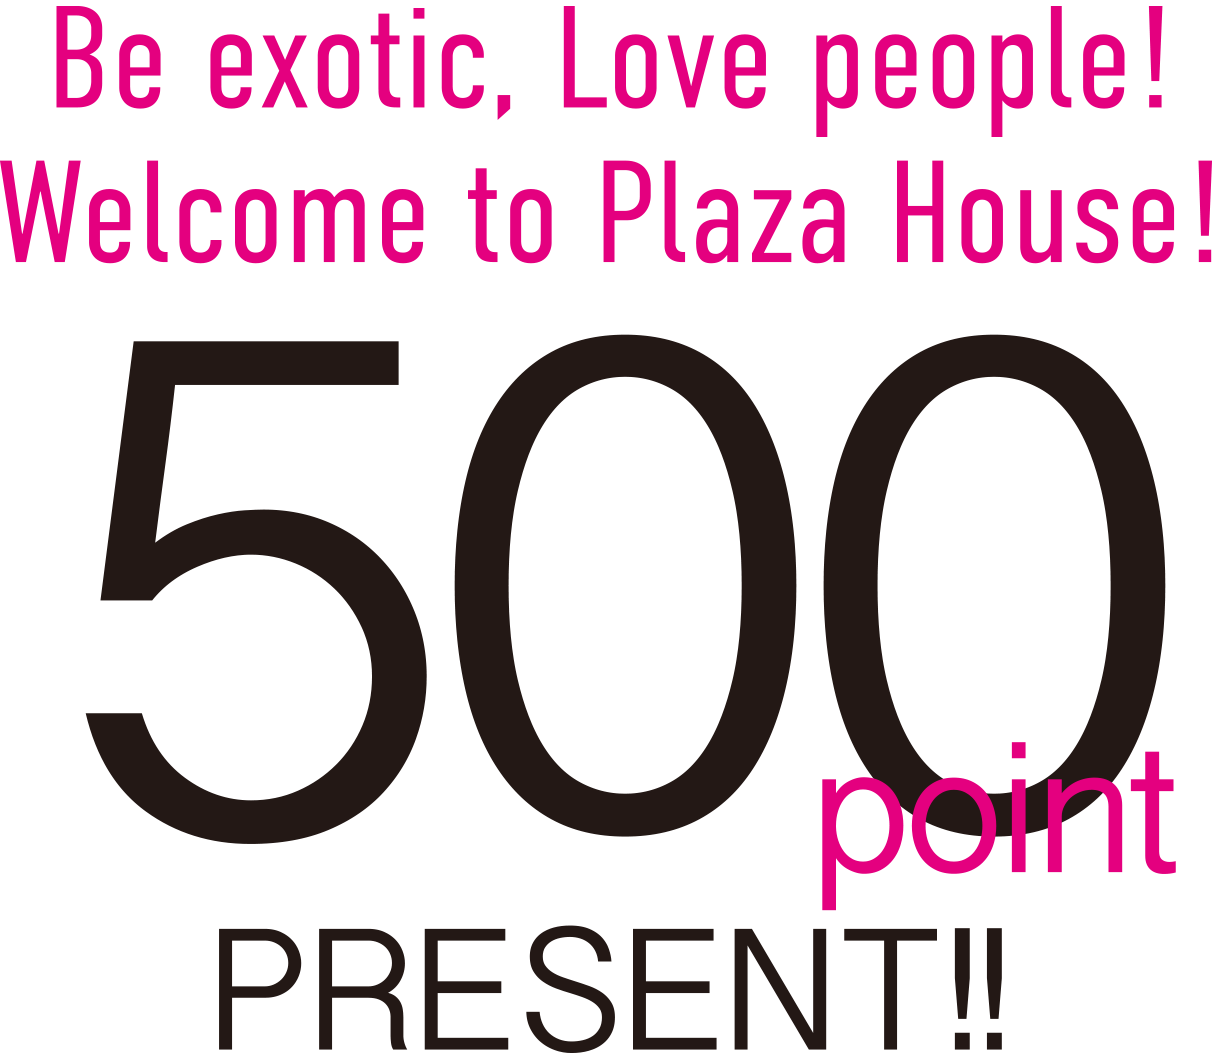 Be exotic, Love Fashion, Welcome to Plaza House!